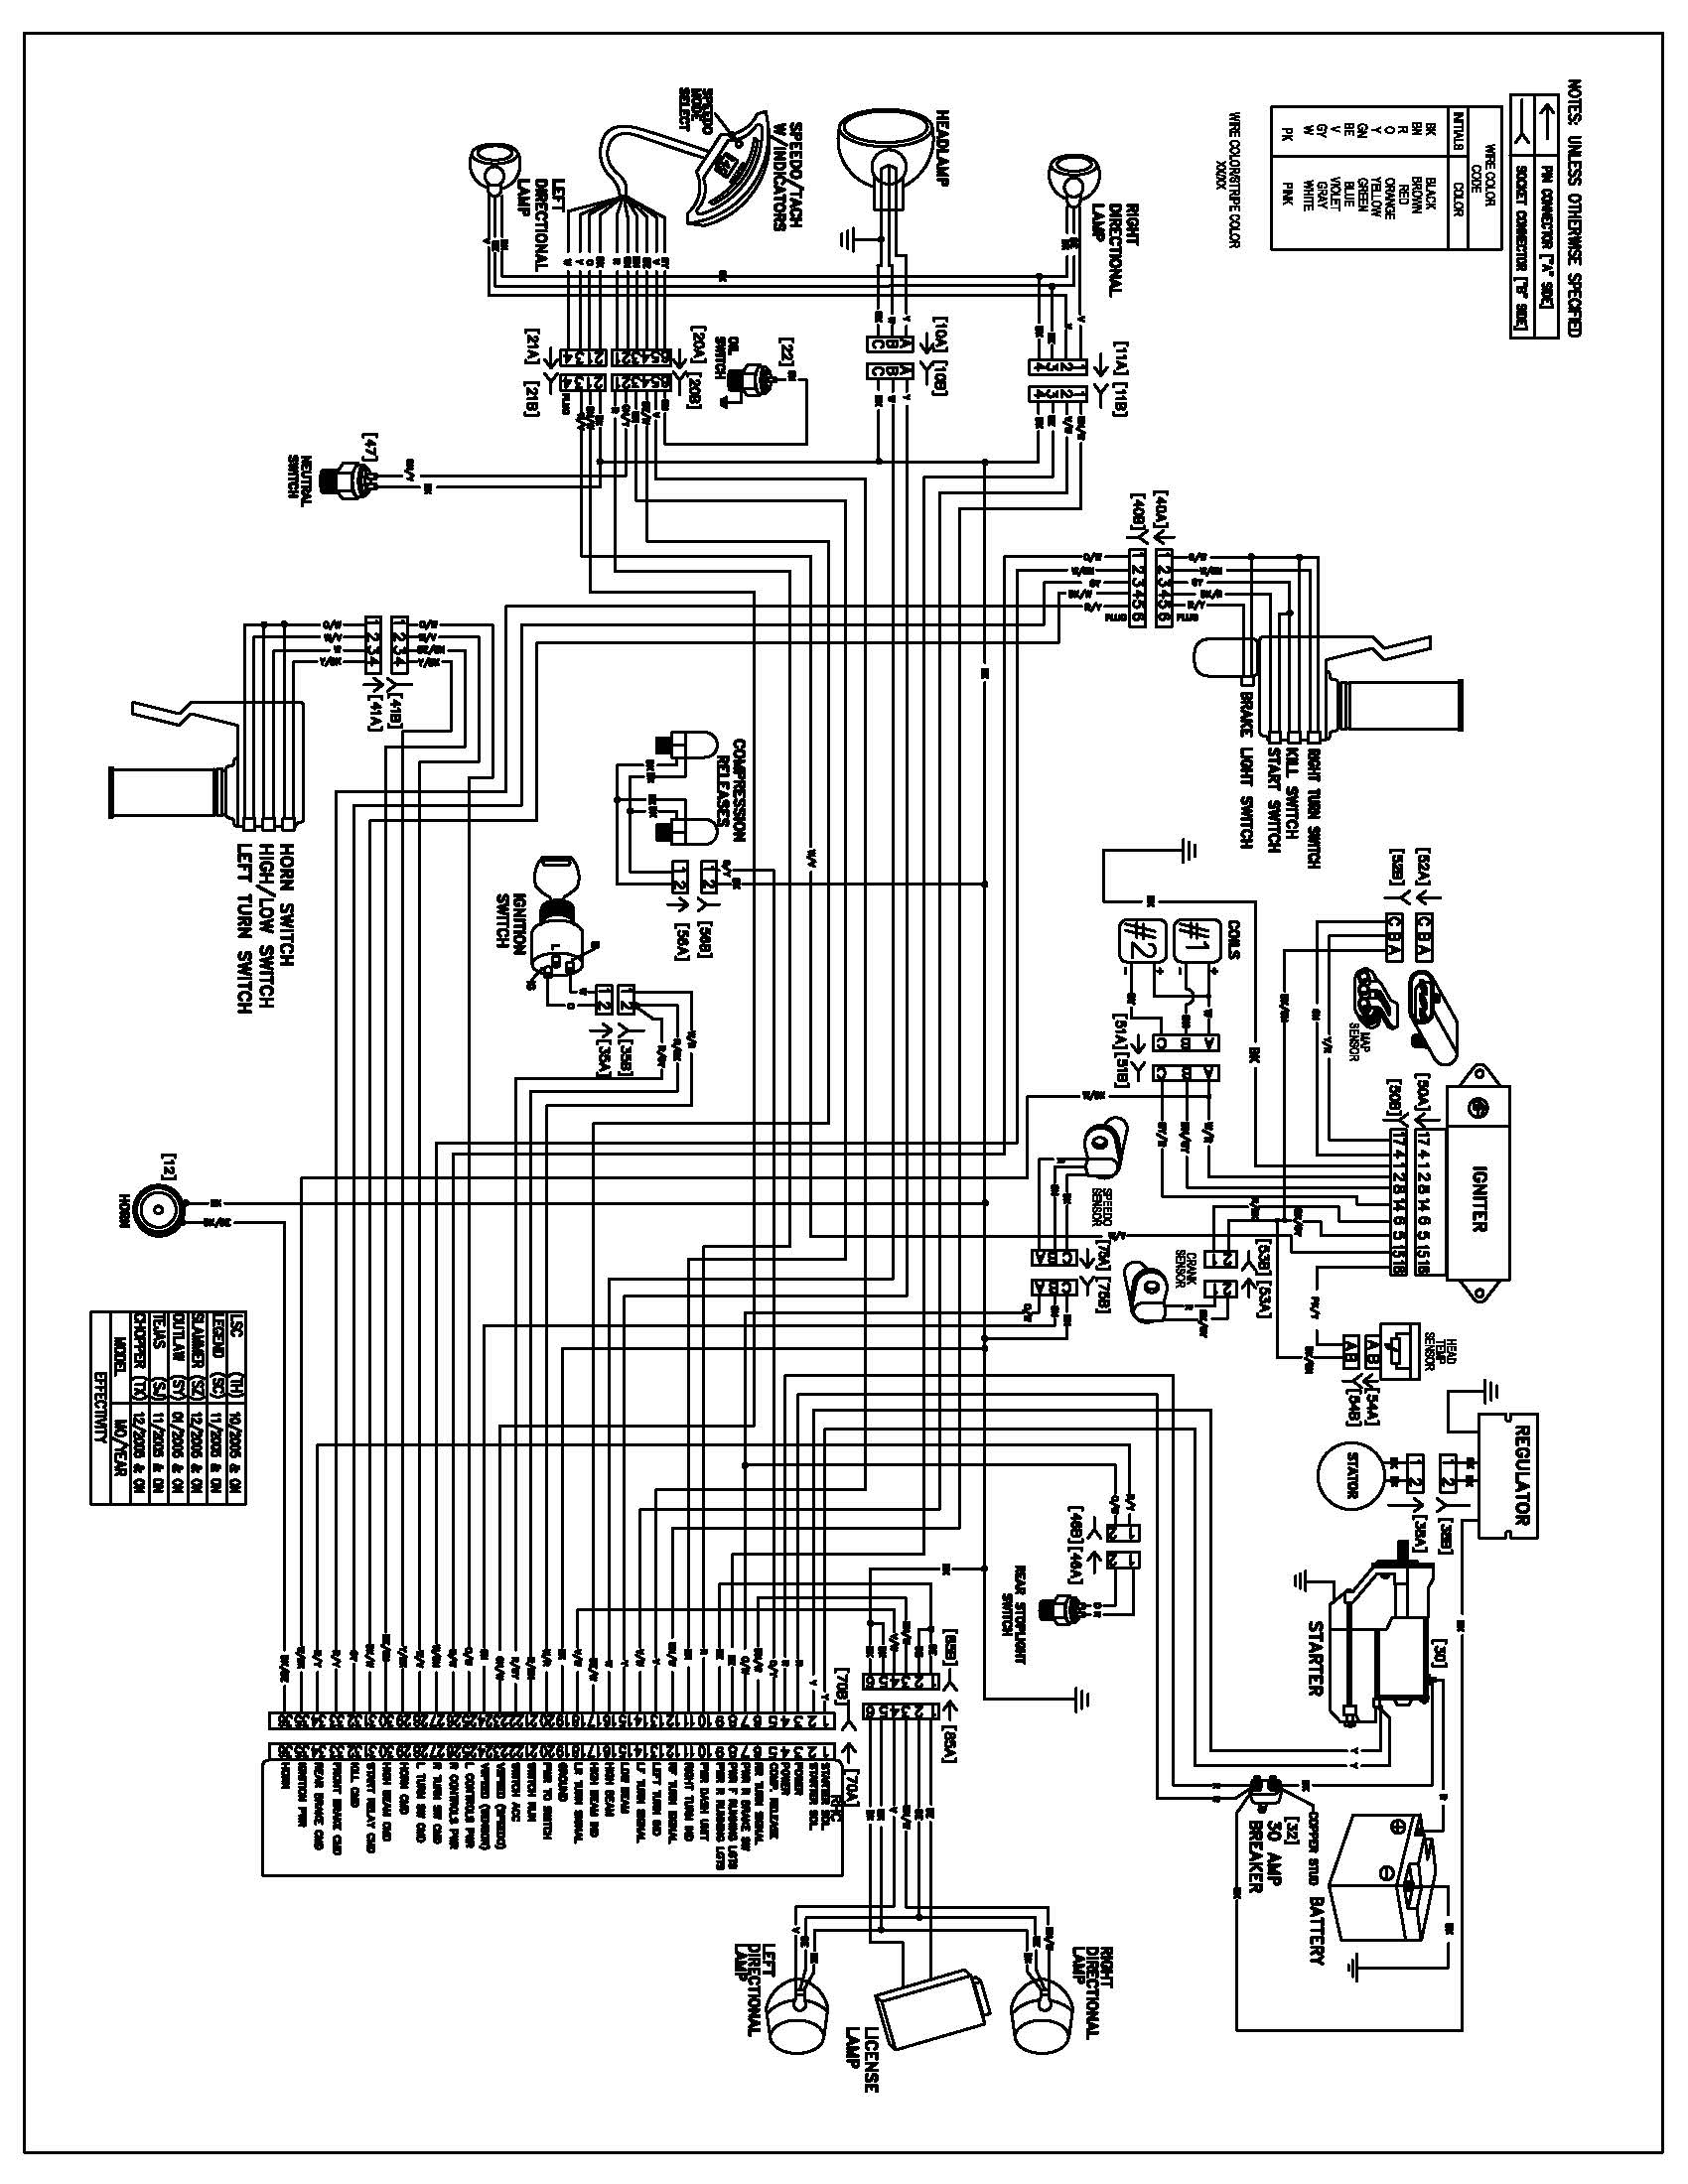 S&S Ignition Wiring Diagram from f01.justanswer.com